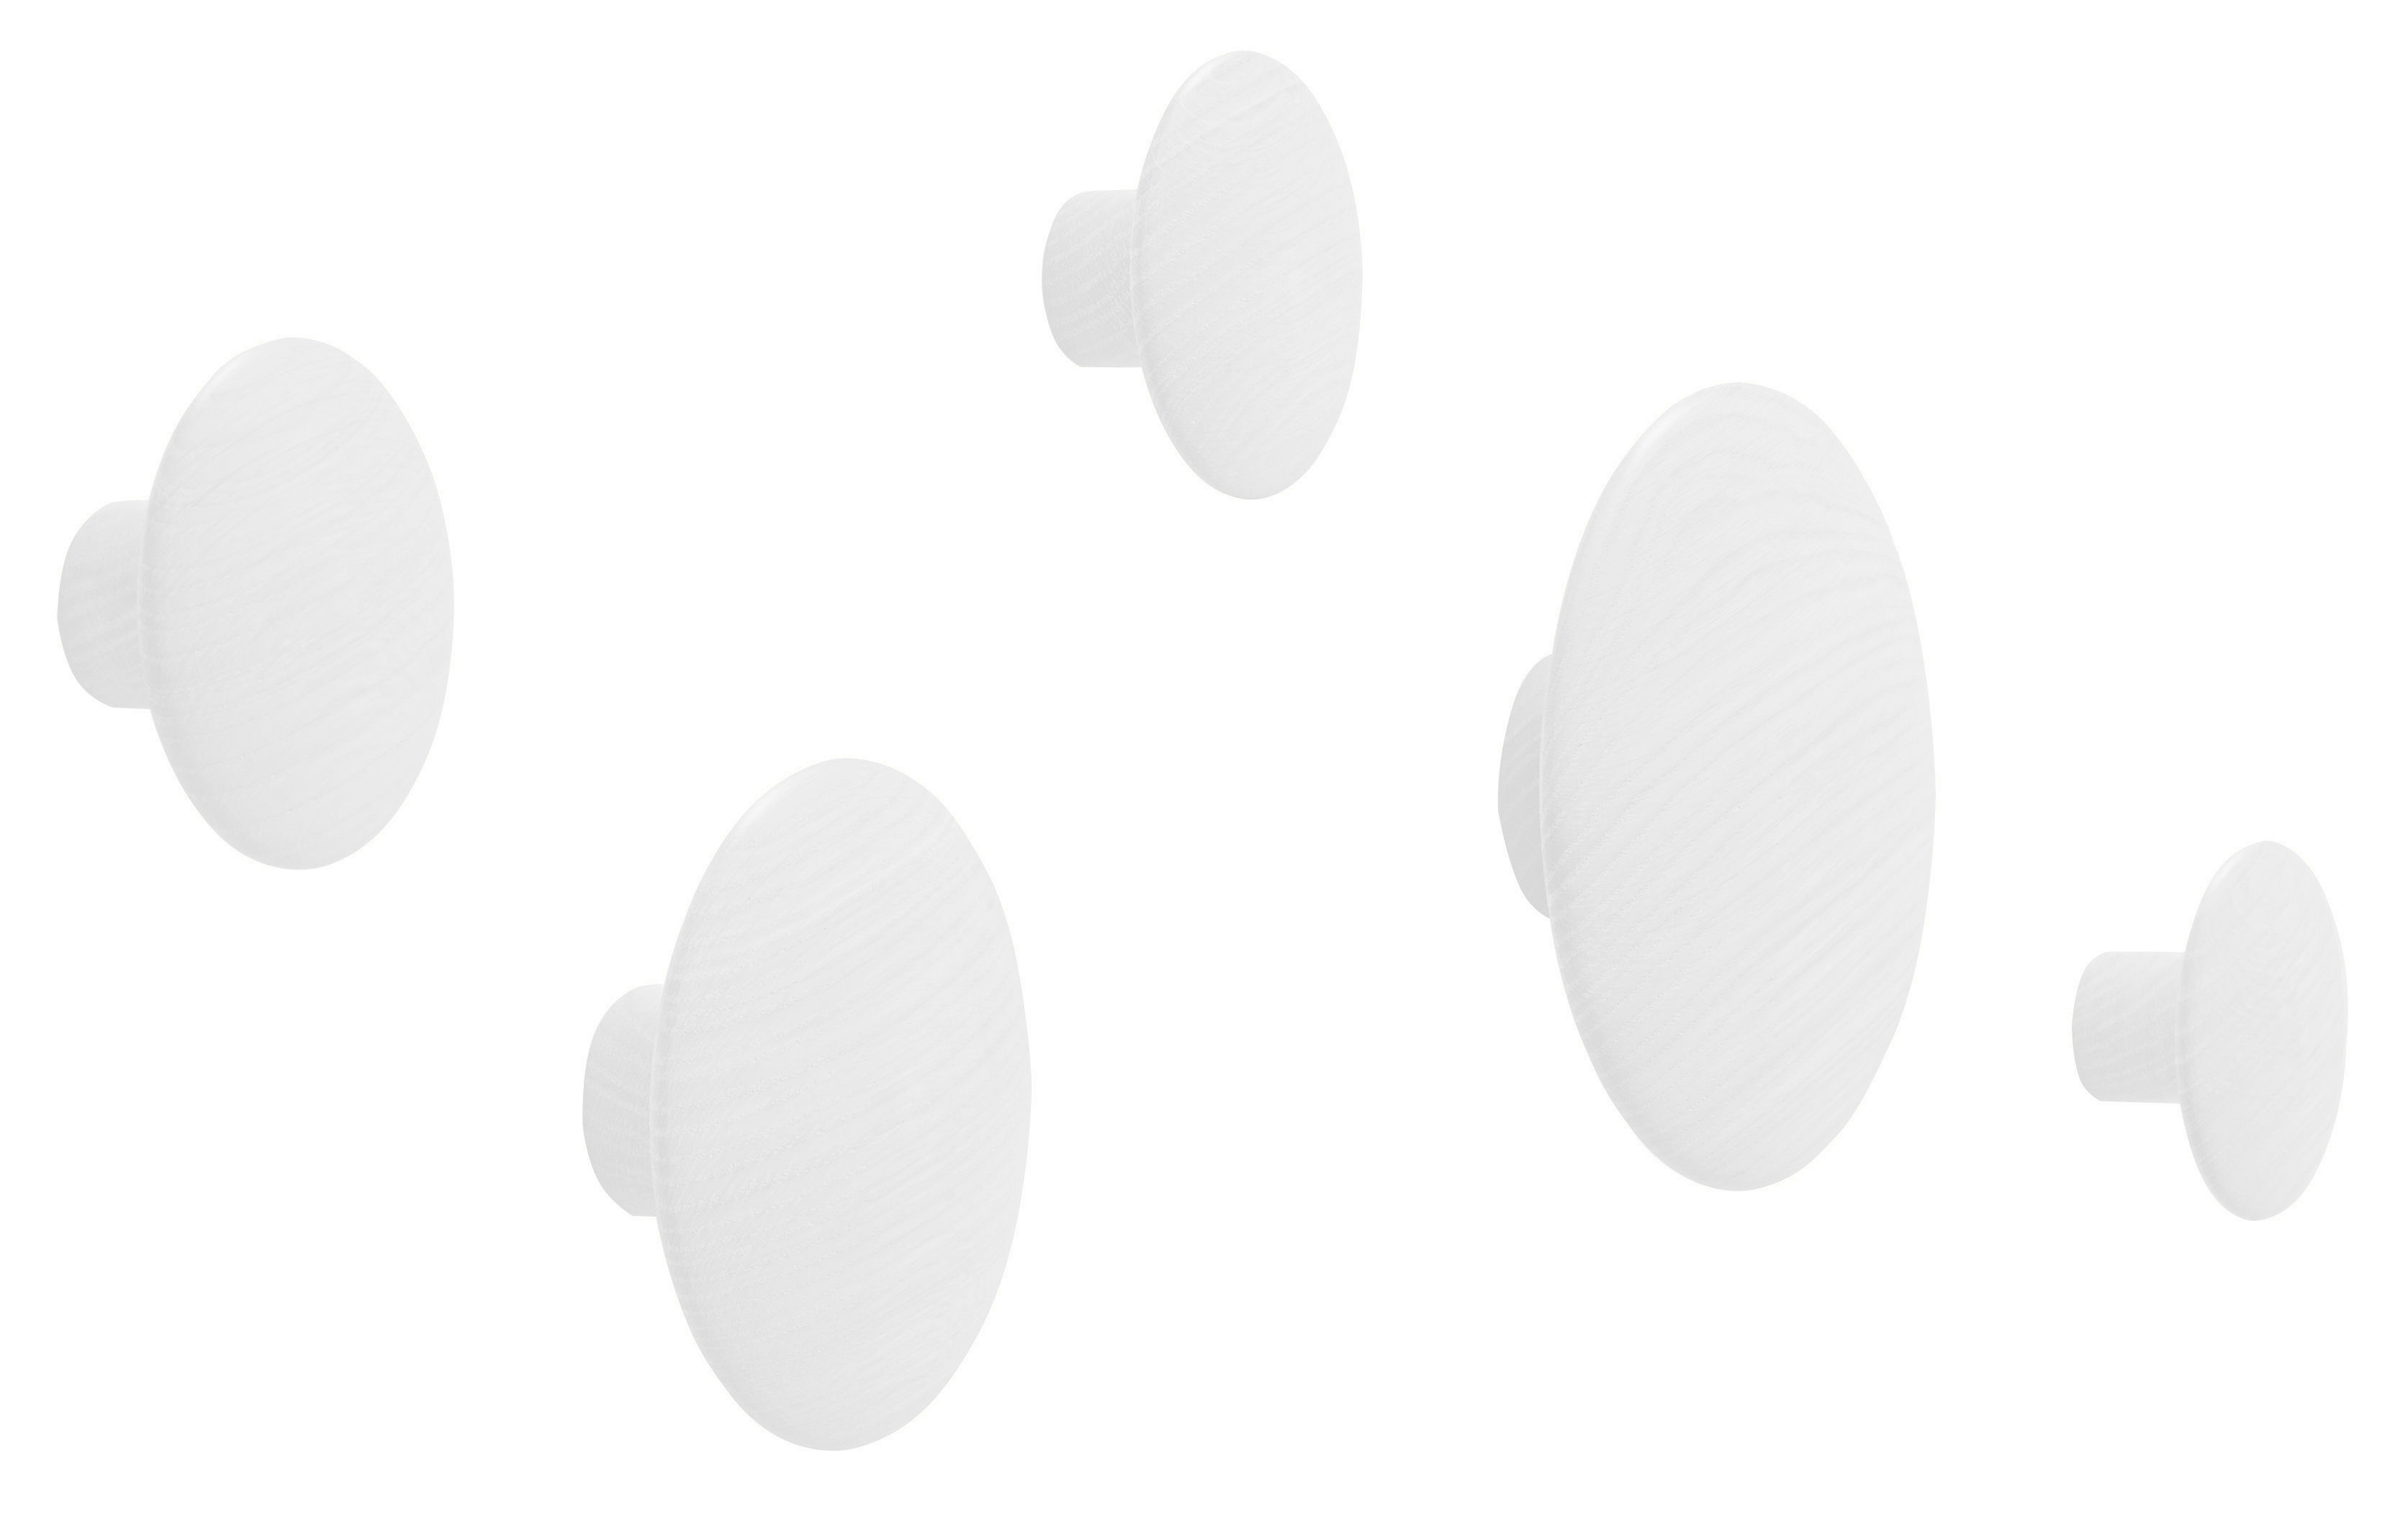 Furniture - Coat Racks & Pegs - The dots Hook - Set of 5 by Muuto - White - Painted ashwoodwood